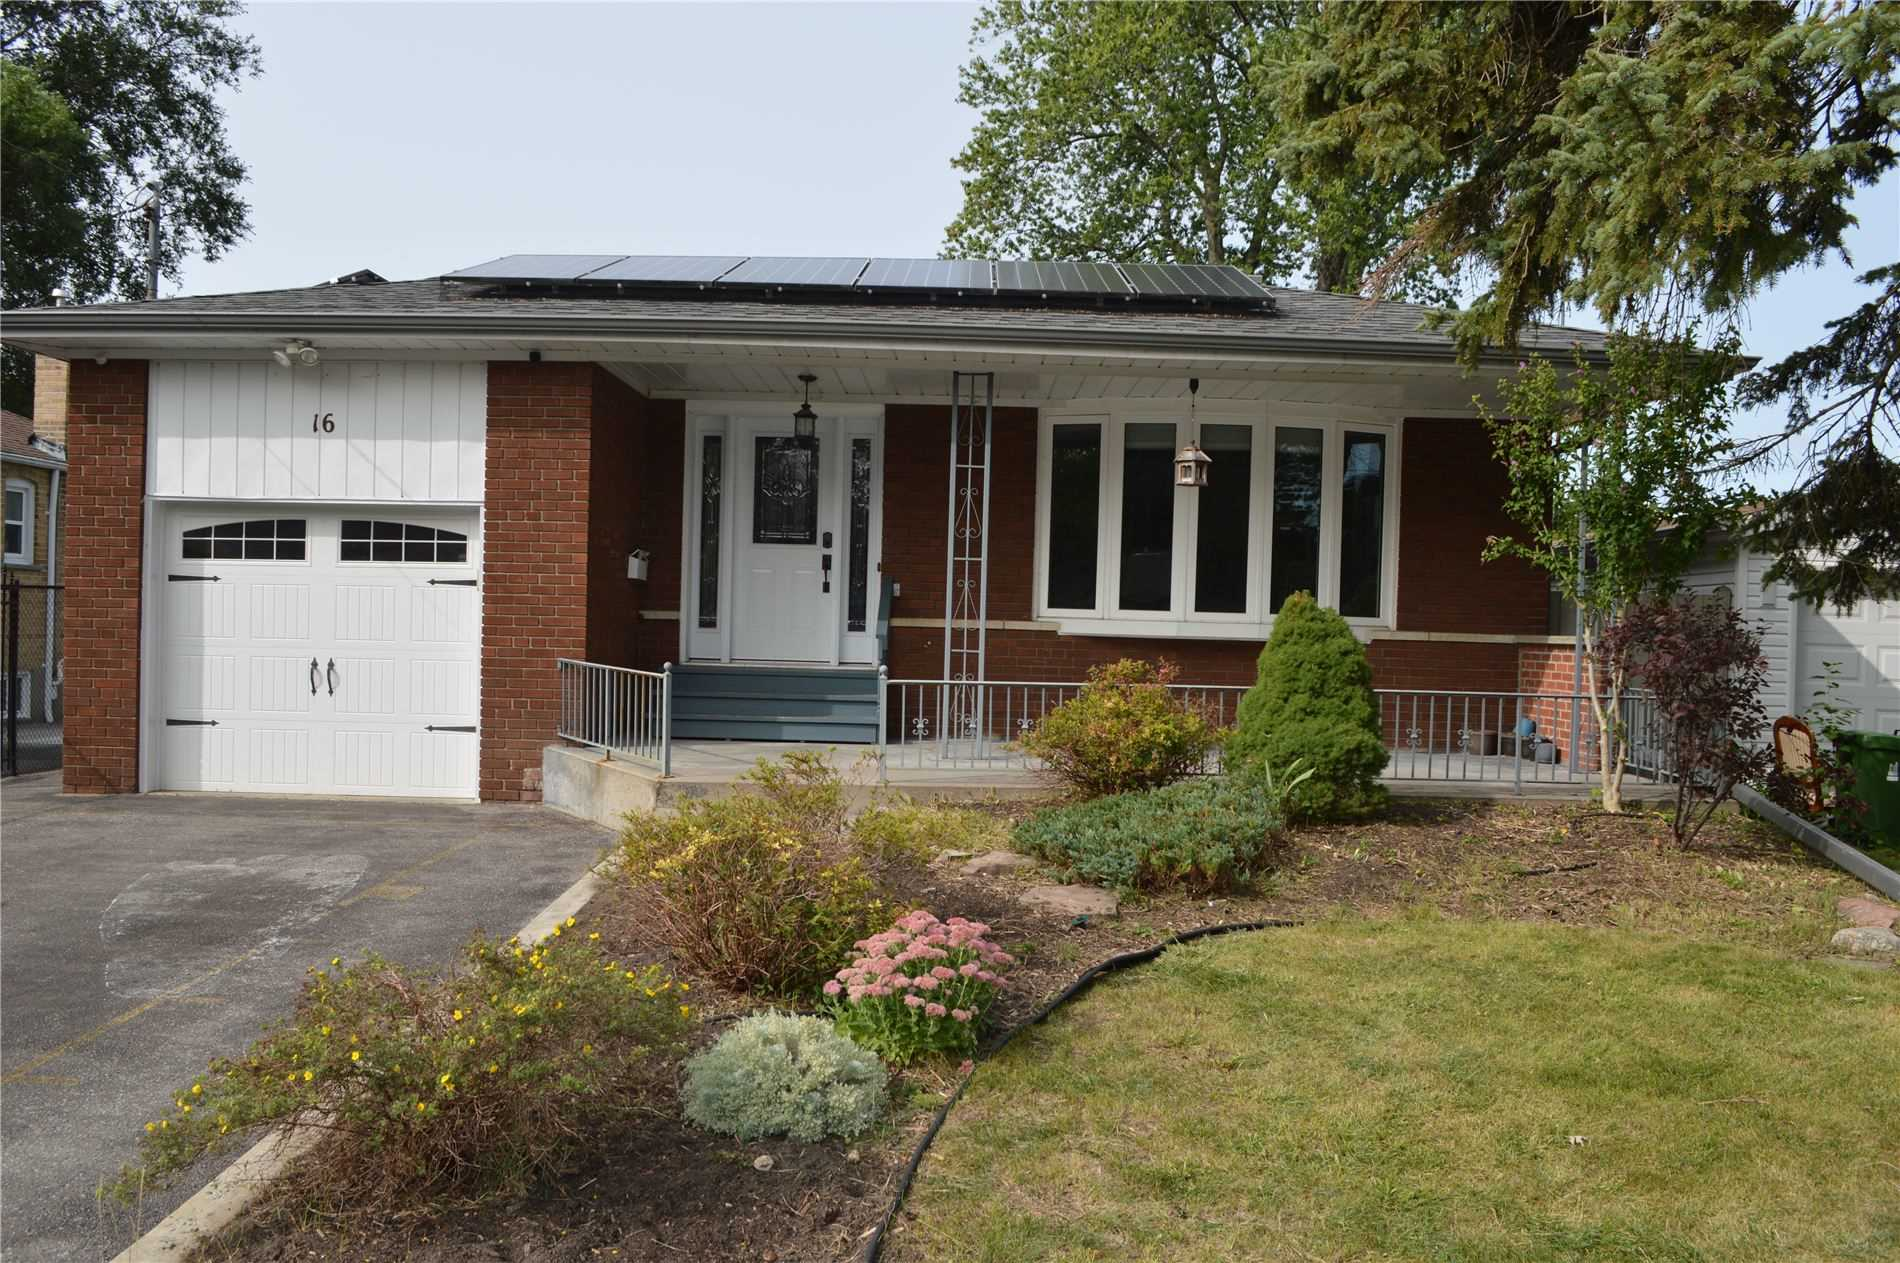 FEATURED LISTING: 16 Homestead Avenue Toronto